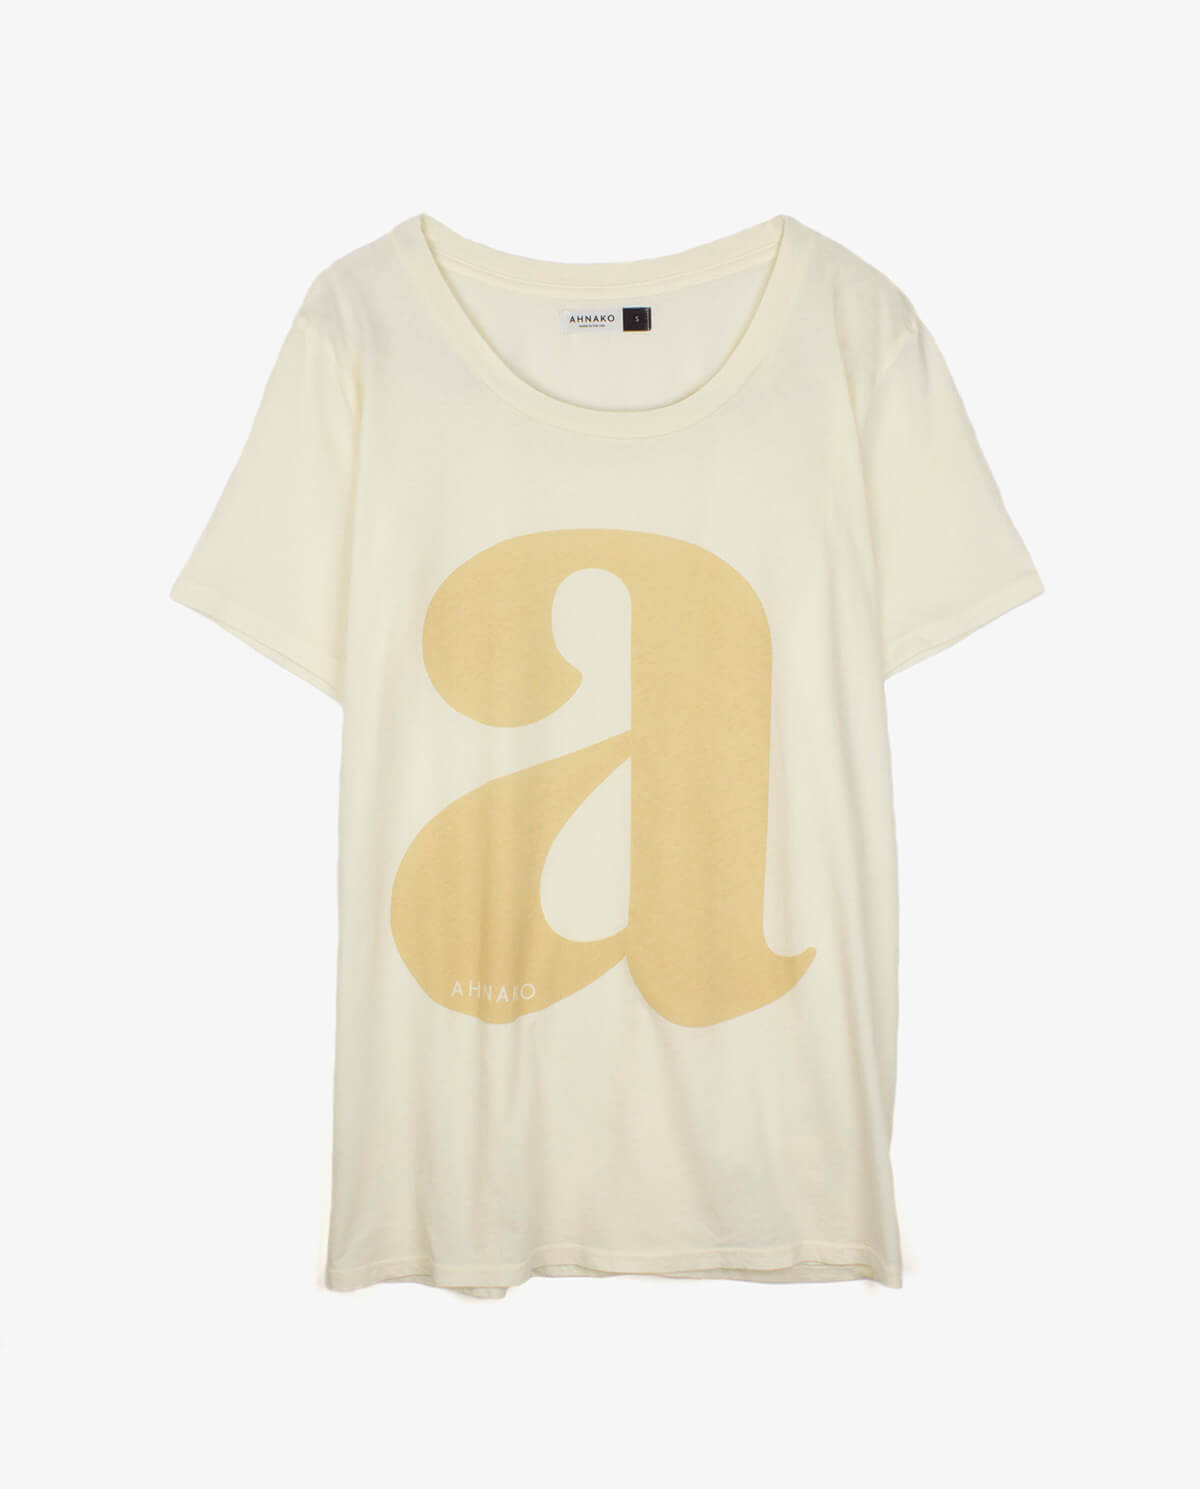 "Ahnako Women's Lowercase ""a"" - Cream T-shirt"